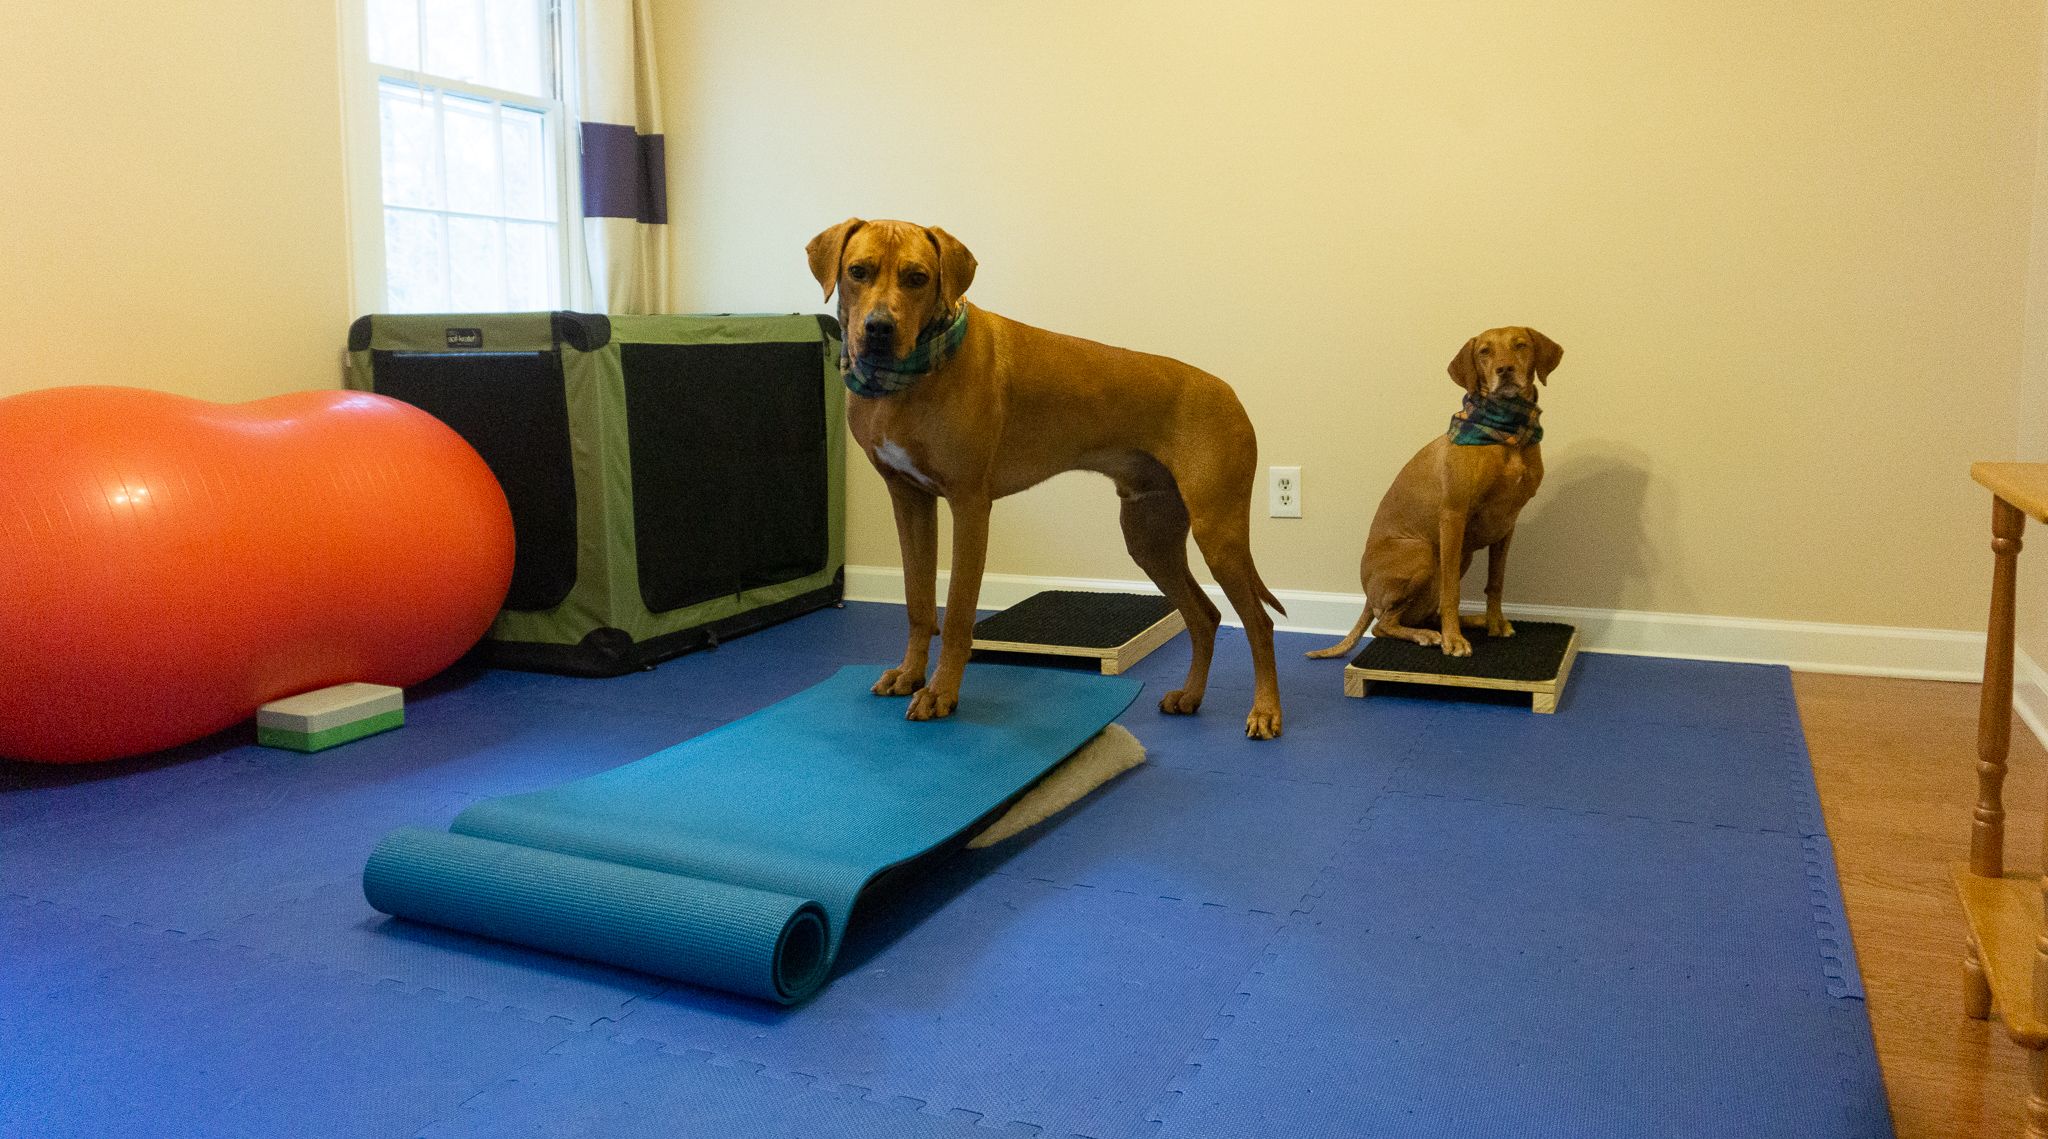 Setting Up a Home Dog Gym